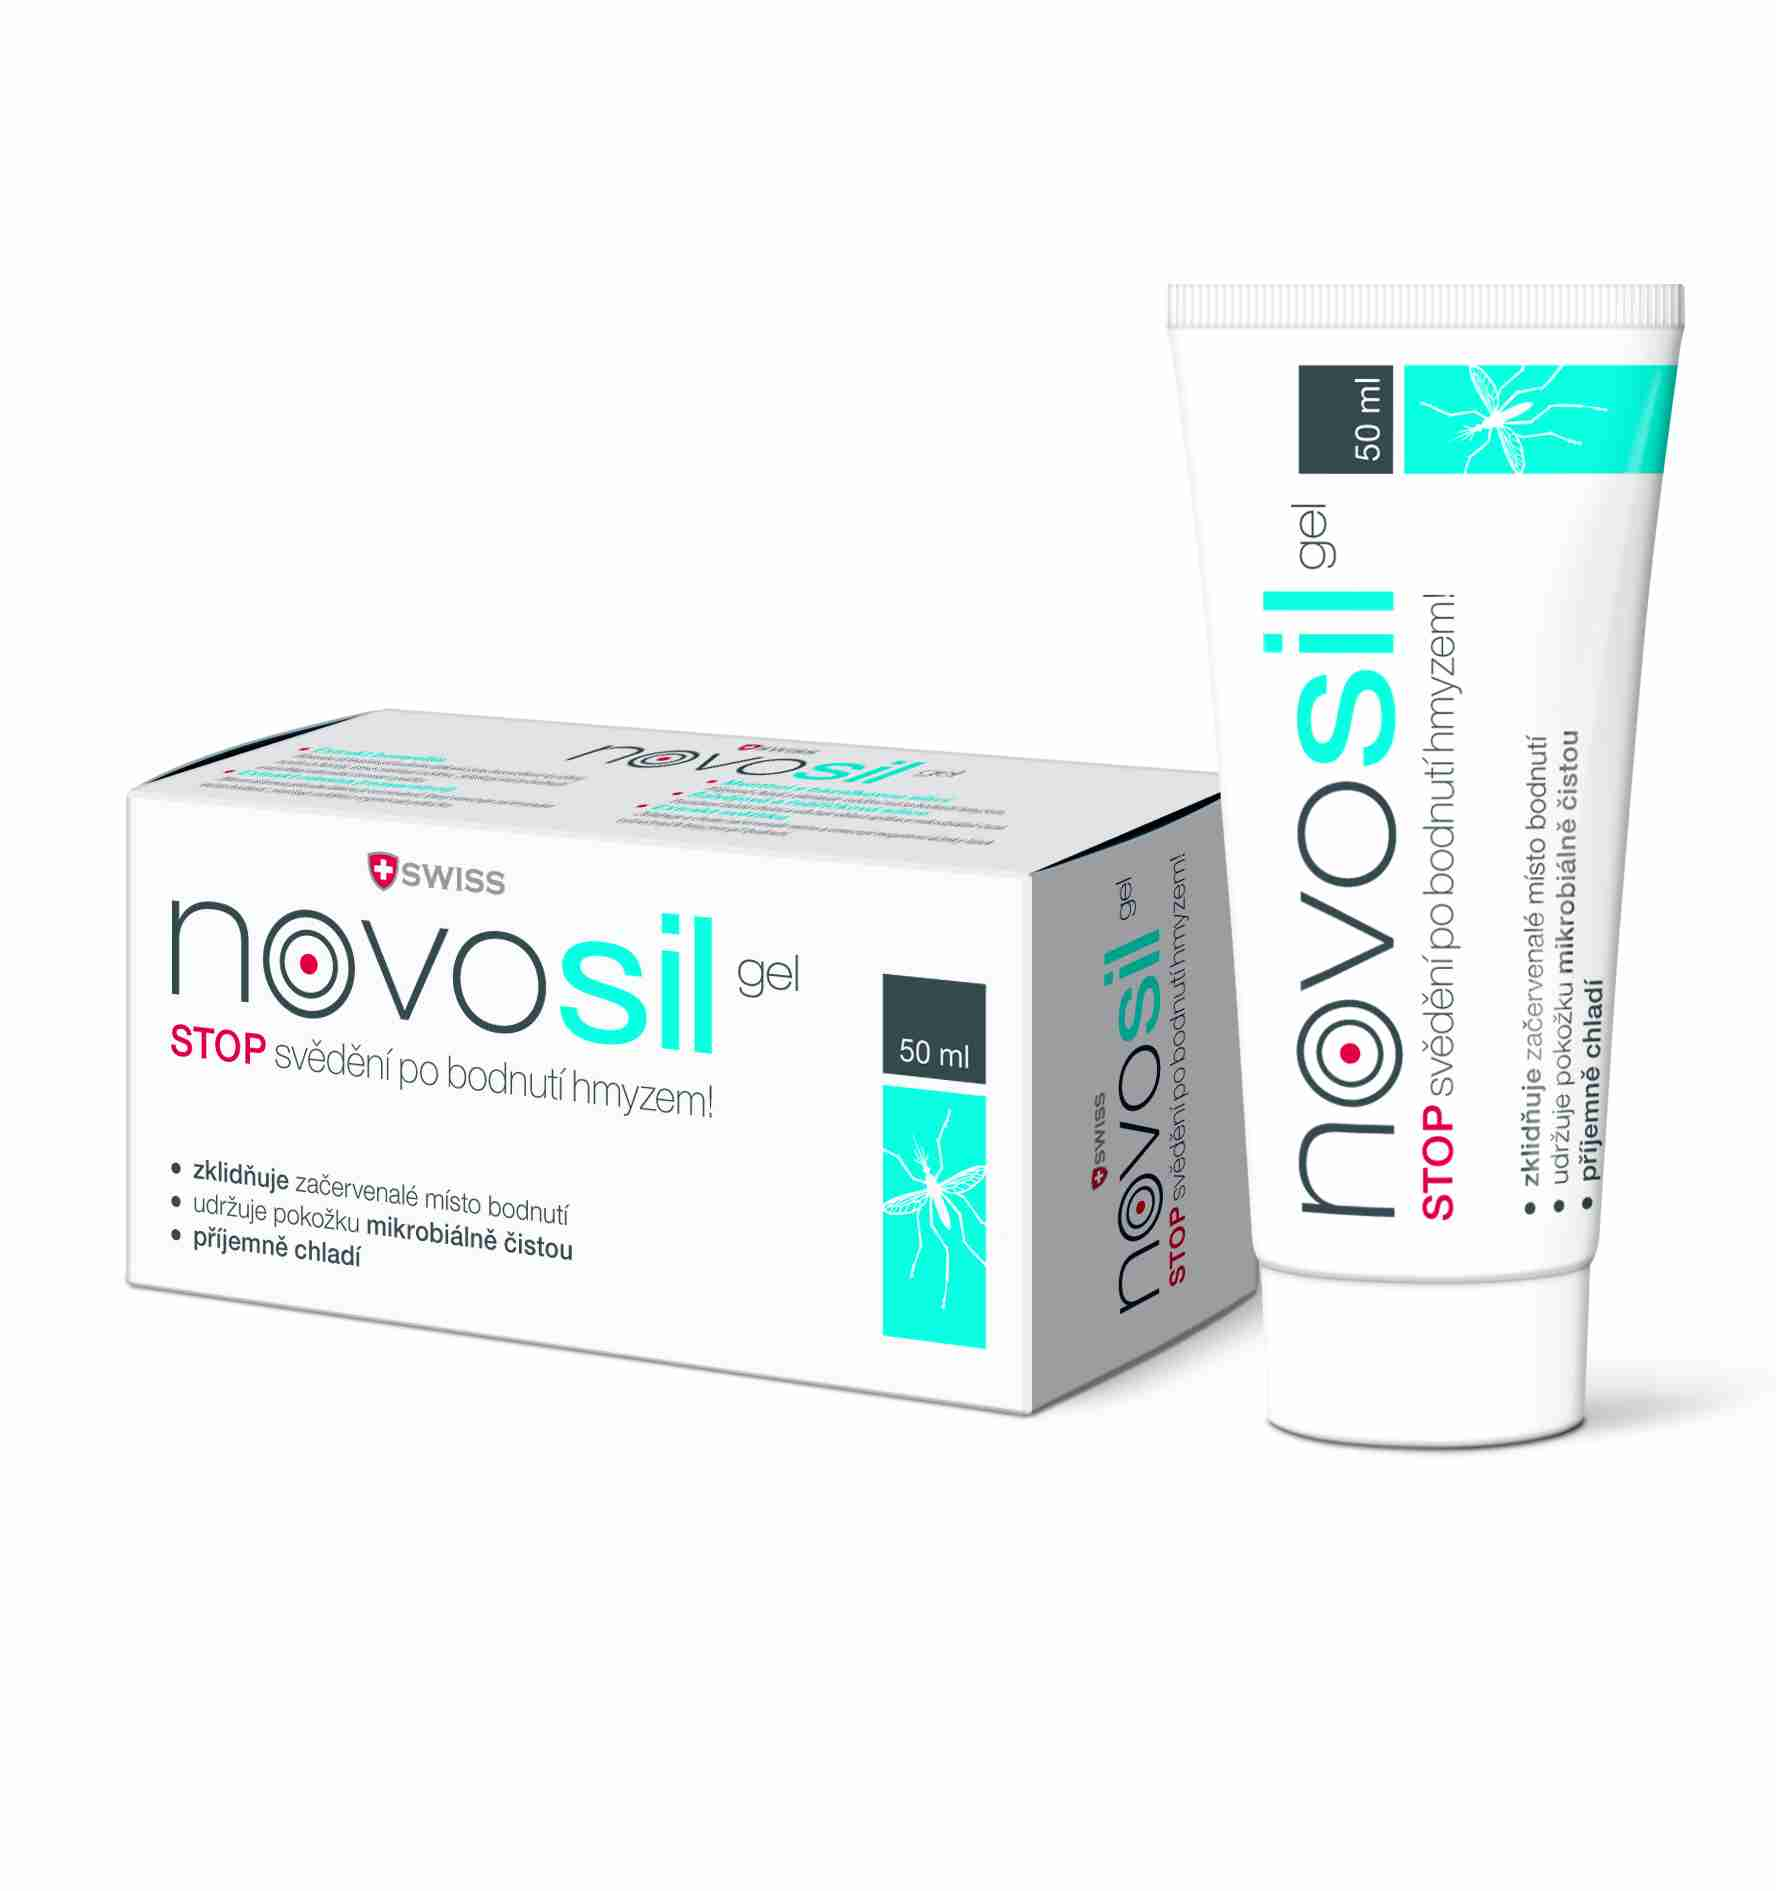 Simply You Novosil gel 50 ml